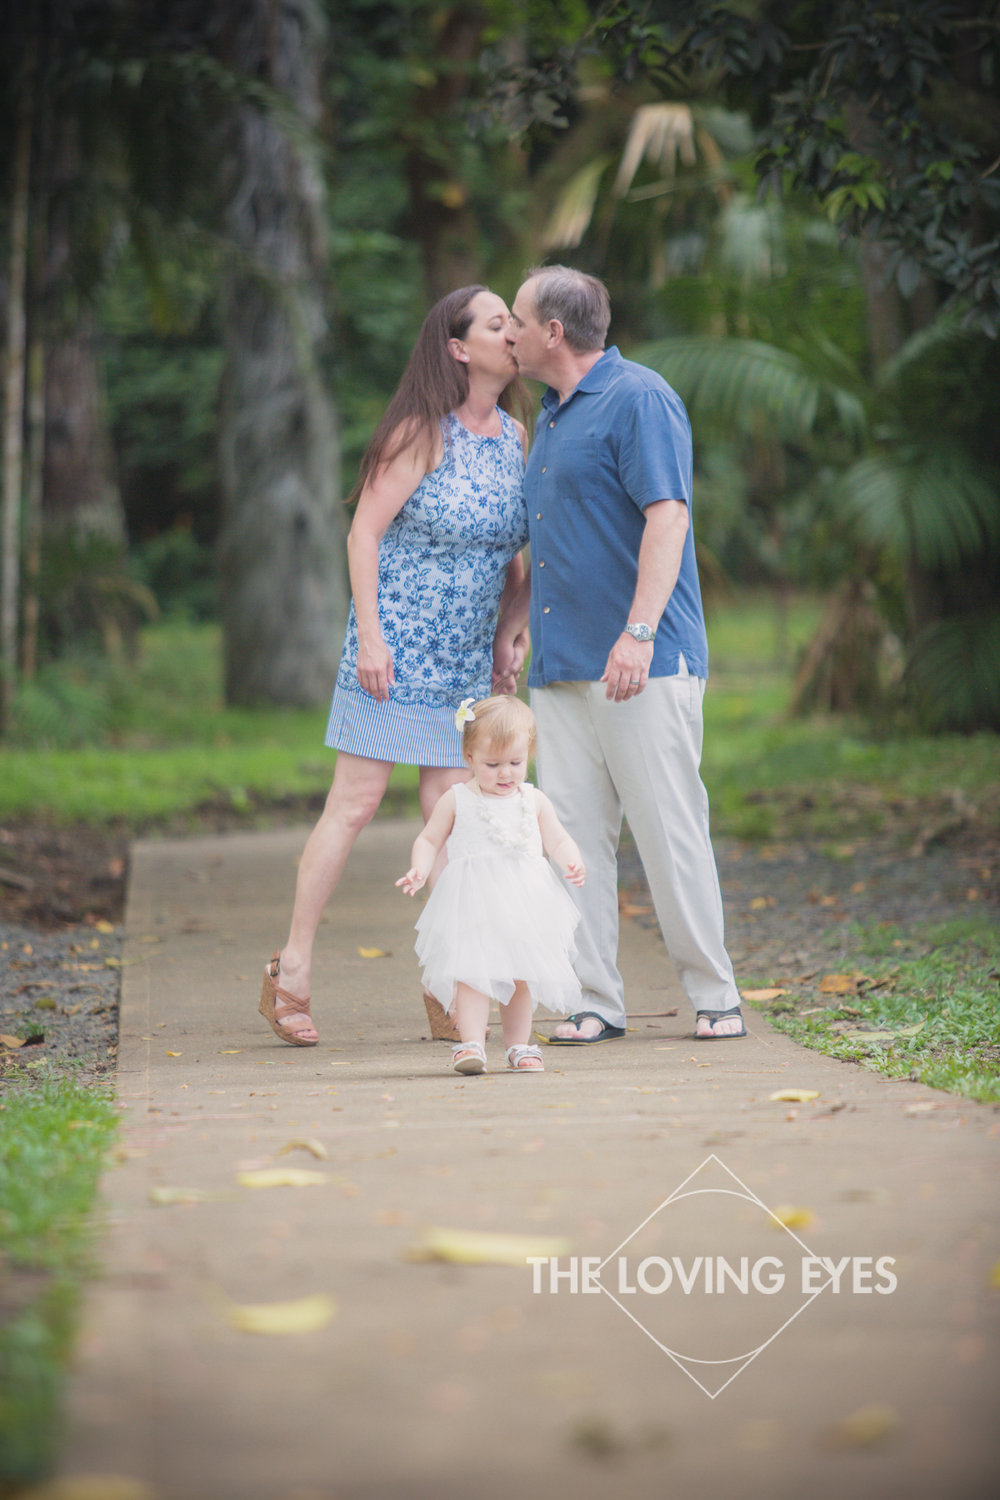 Family portrait with kissing in Hawaii at Hoʻomaluhia Botanical Gardens